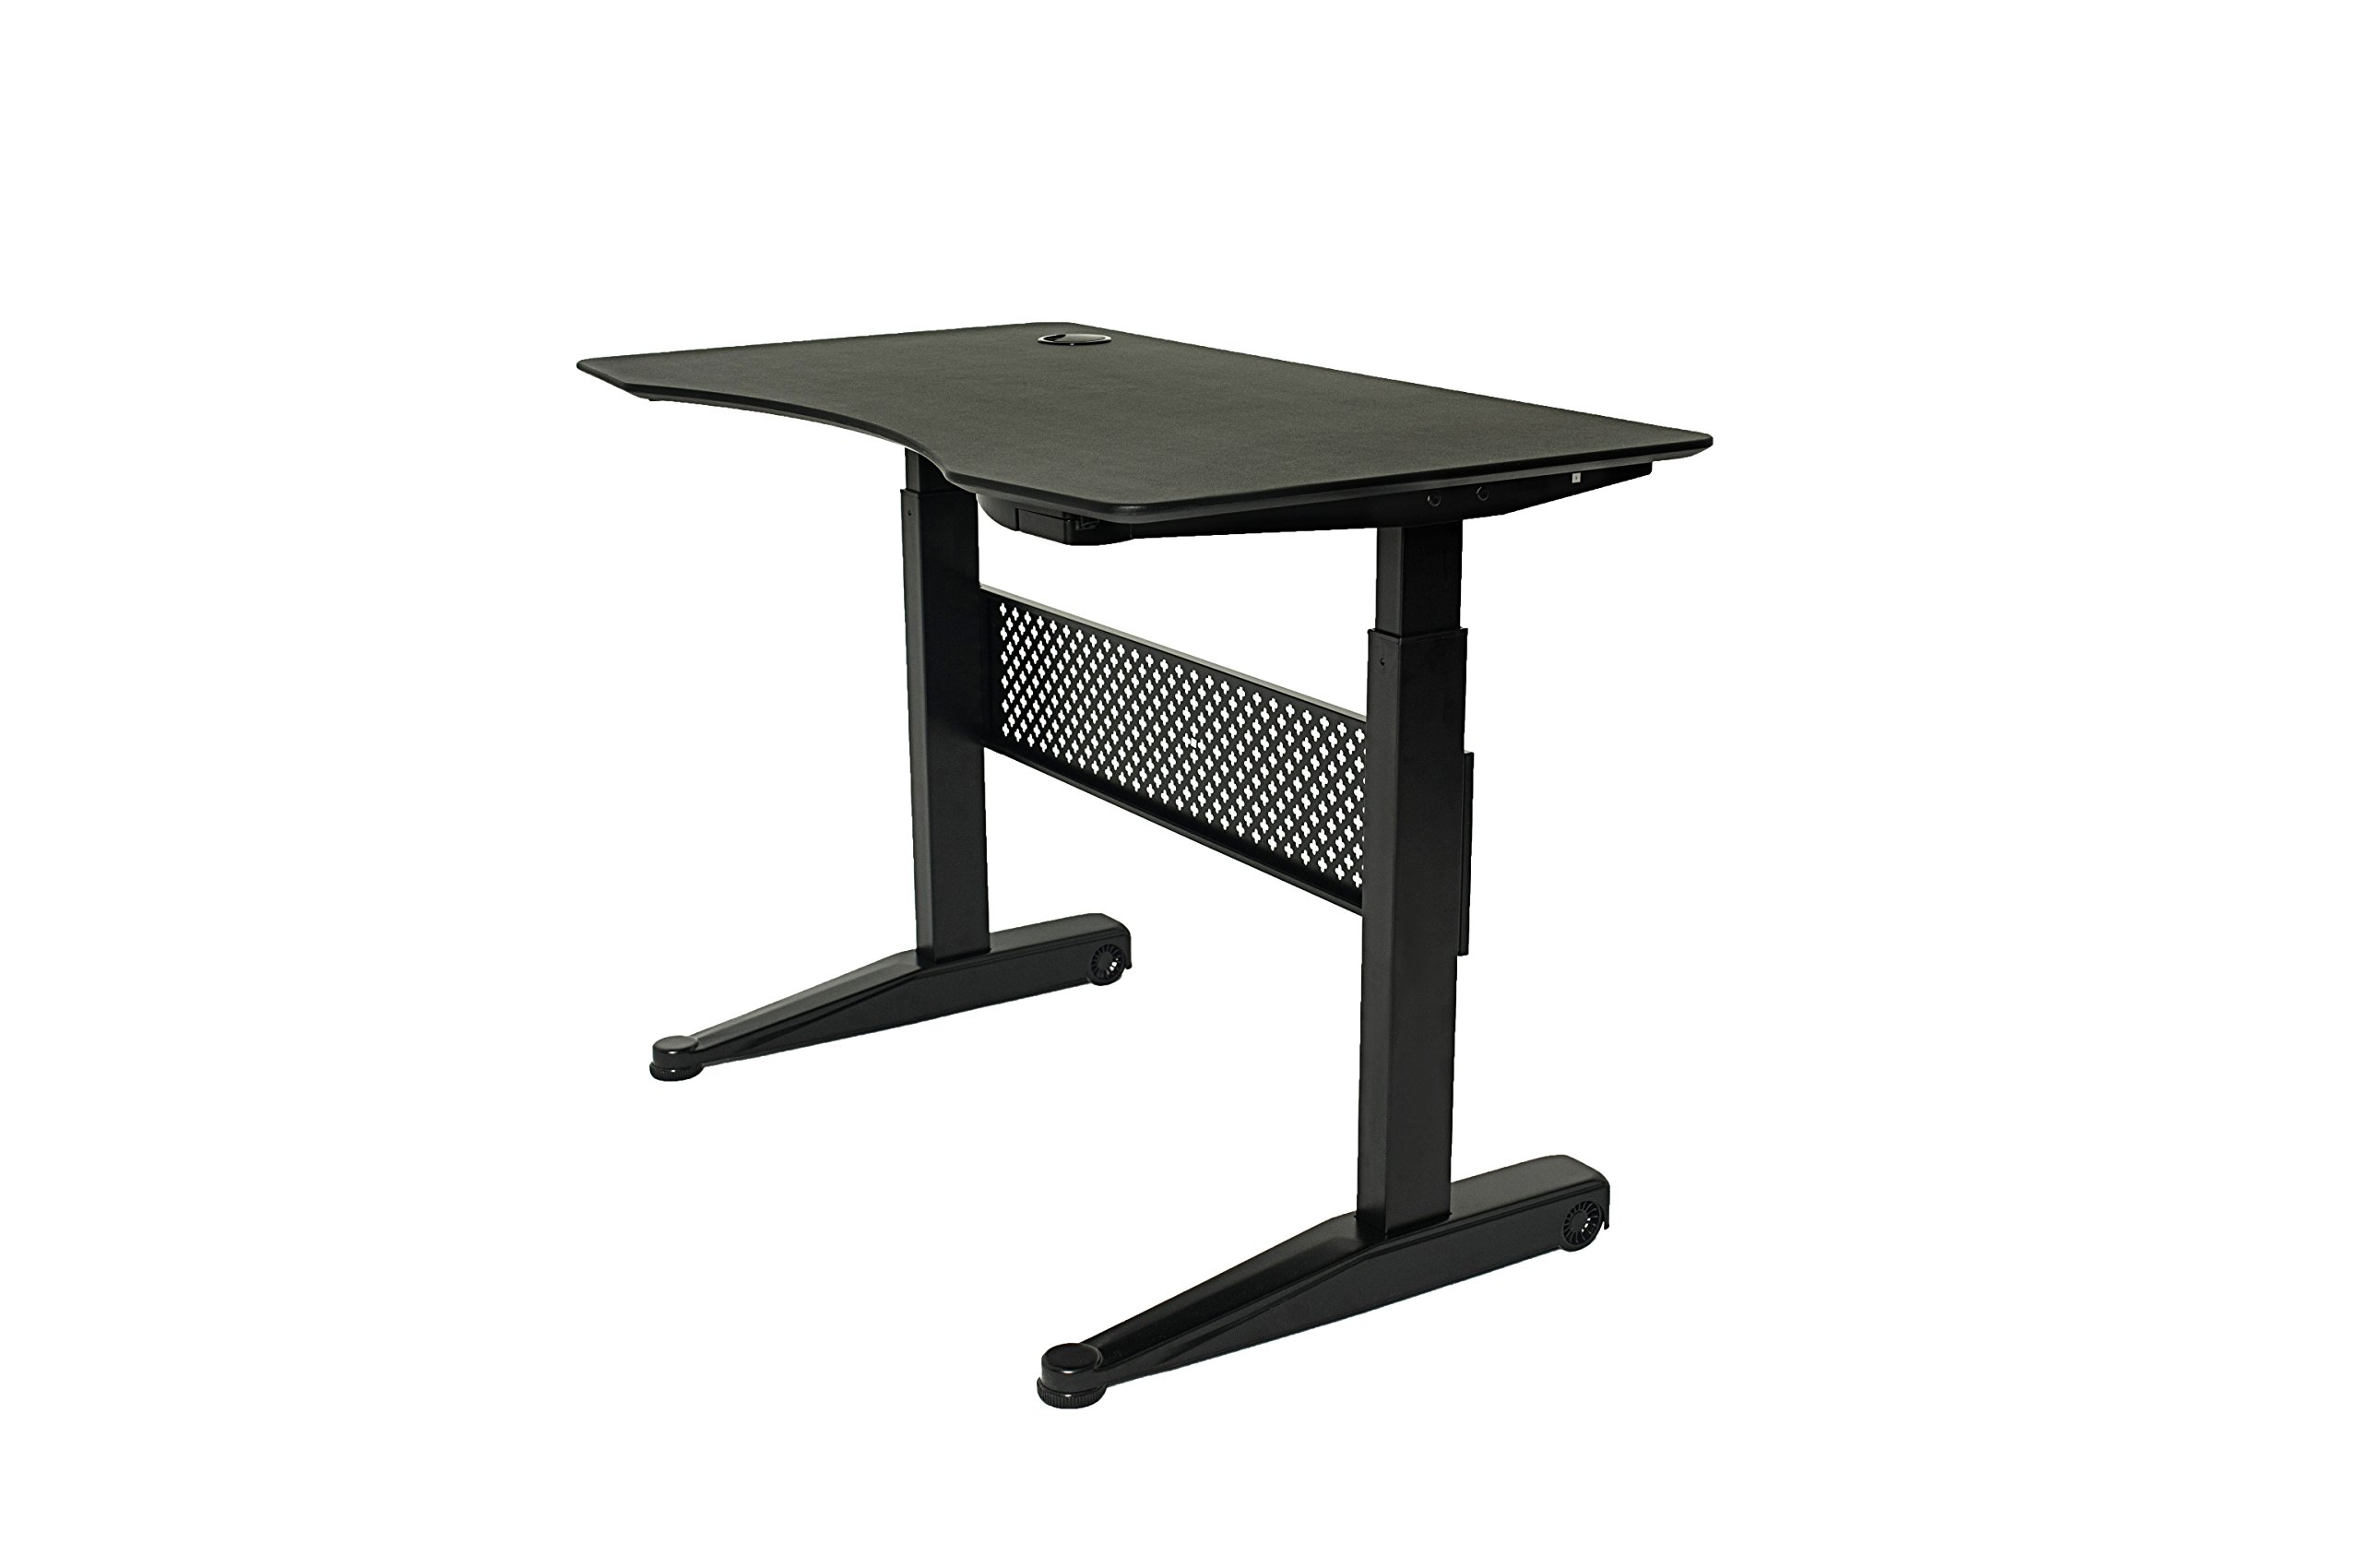 """ApexDesk AirDesk Series 47x27'' Movable Sit/Standing Desk, Pneumatic Height Adjustable from 29"""" to 48"""" (47x27'' Textured Black Top, Black Frame)"""